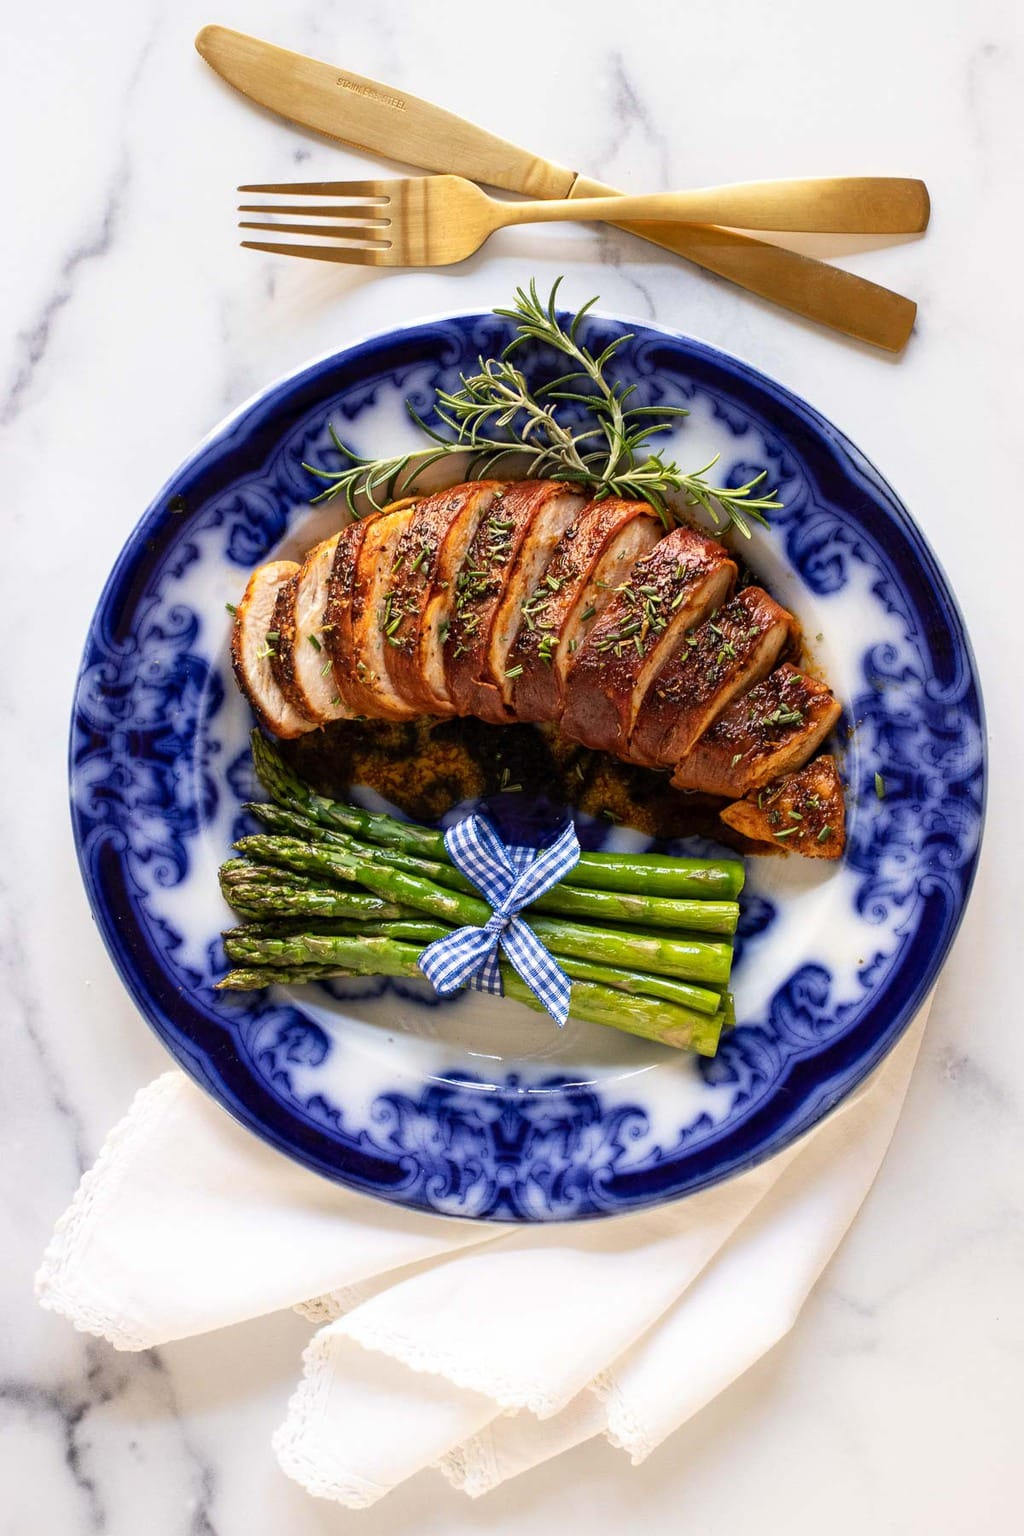 Overhead vertical photo of Prosciutto-Wrapped Chicken Breasts on a Flo blue plate with grilled asparagus spears beside the breast.